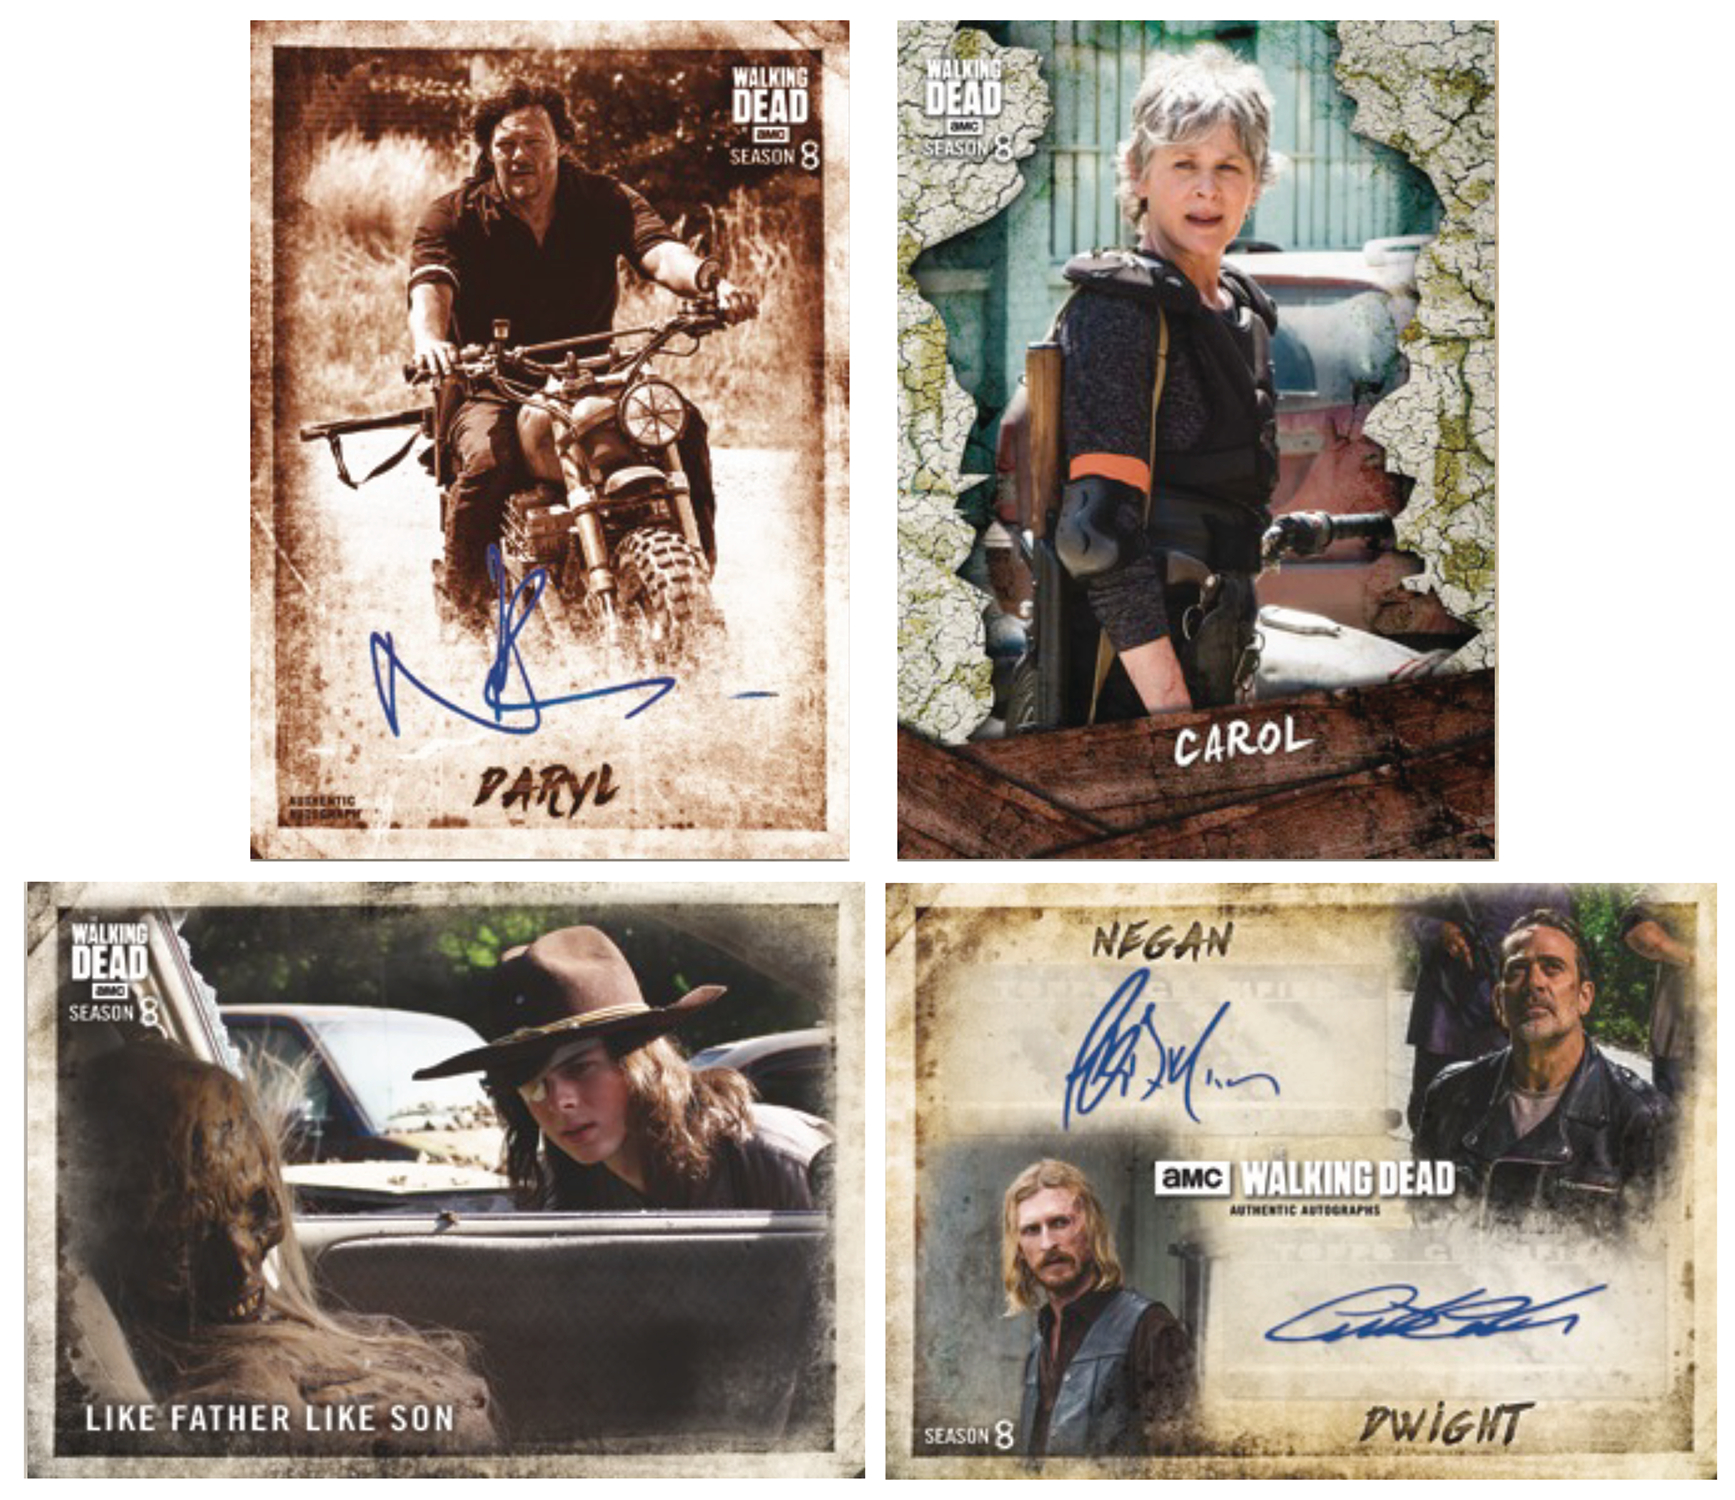 TOPPS 2018 WALKING DEAD SEASON 8 T/C BOX